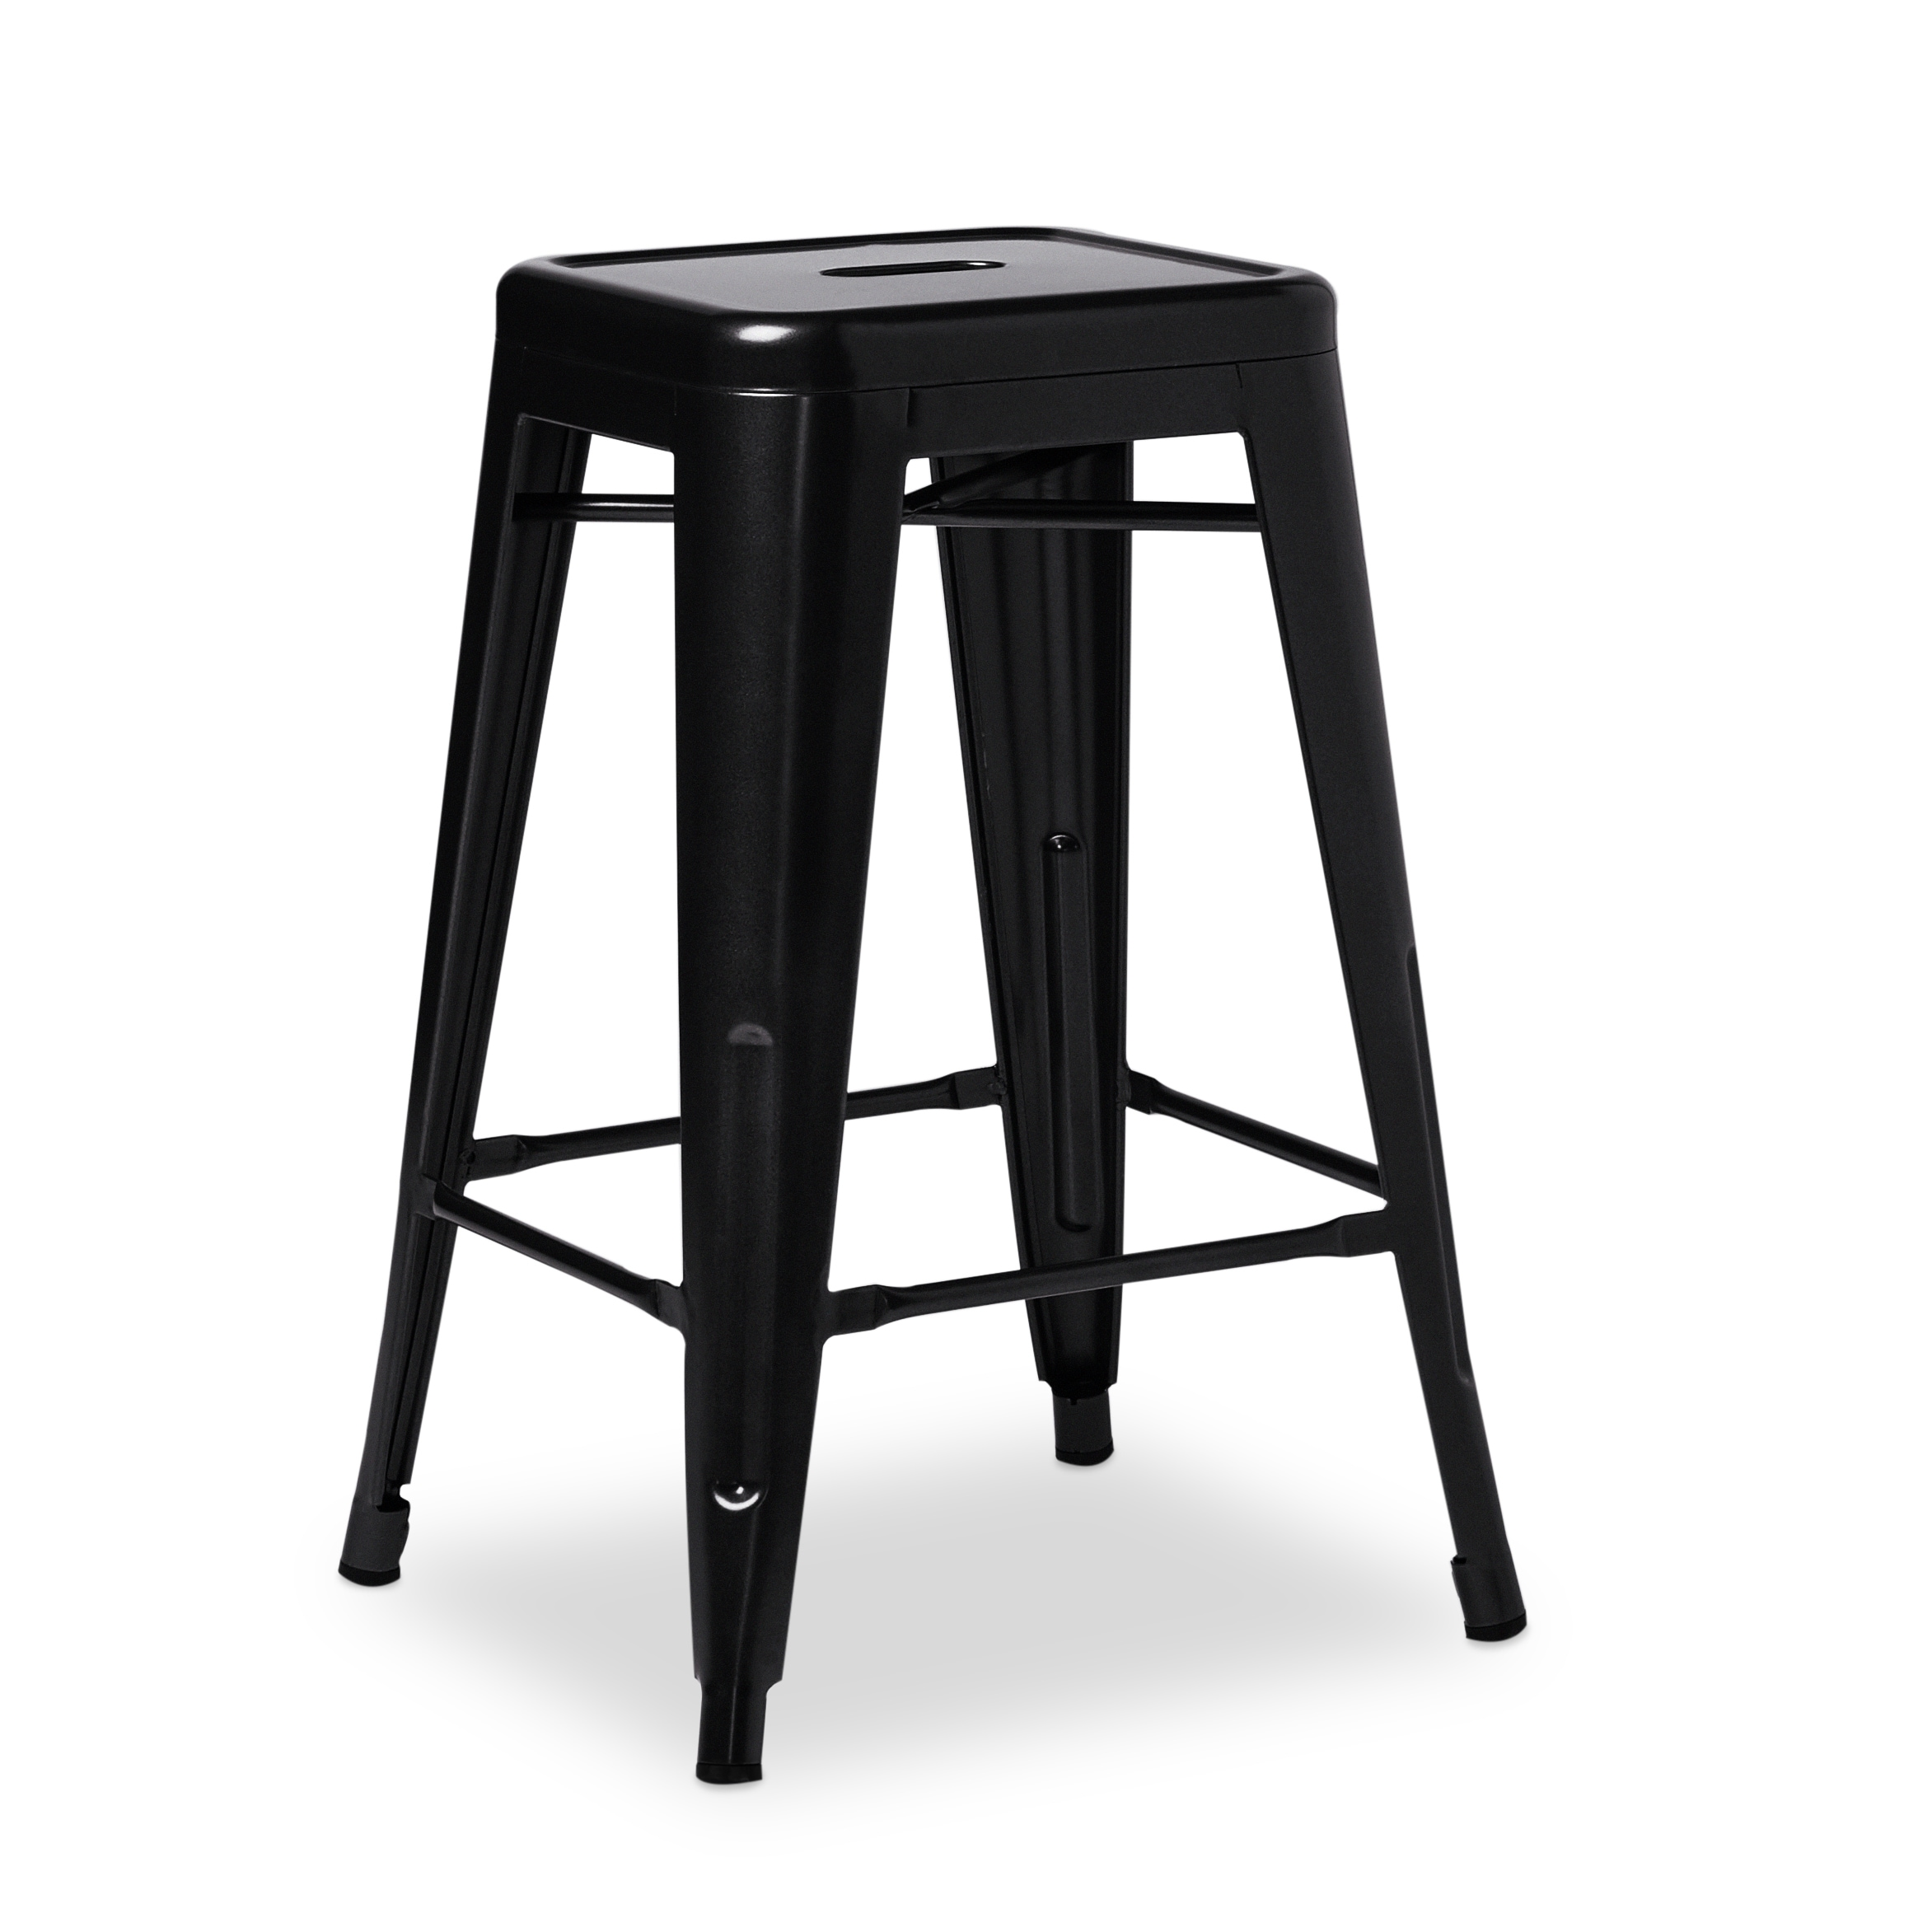 Marvelous I Love Living 24 Inch Black Metal Counter Stools Set Of 2 Ibusinesslaw Wood Chair Design Ideas Ibusinesslaworg